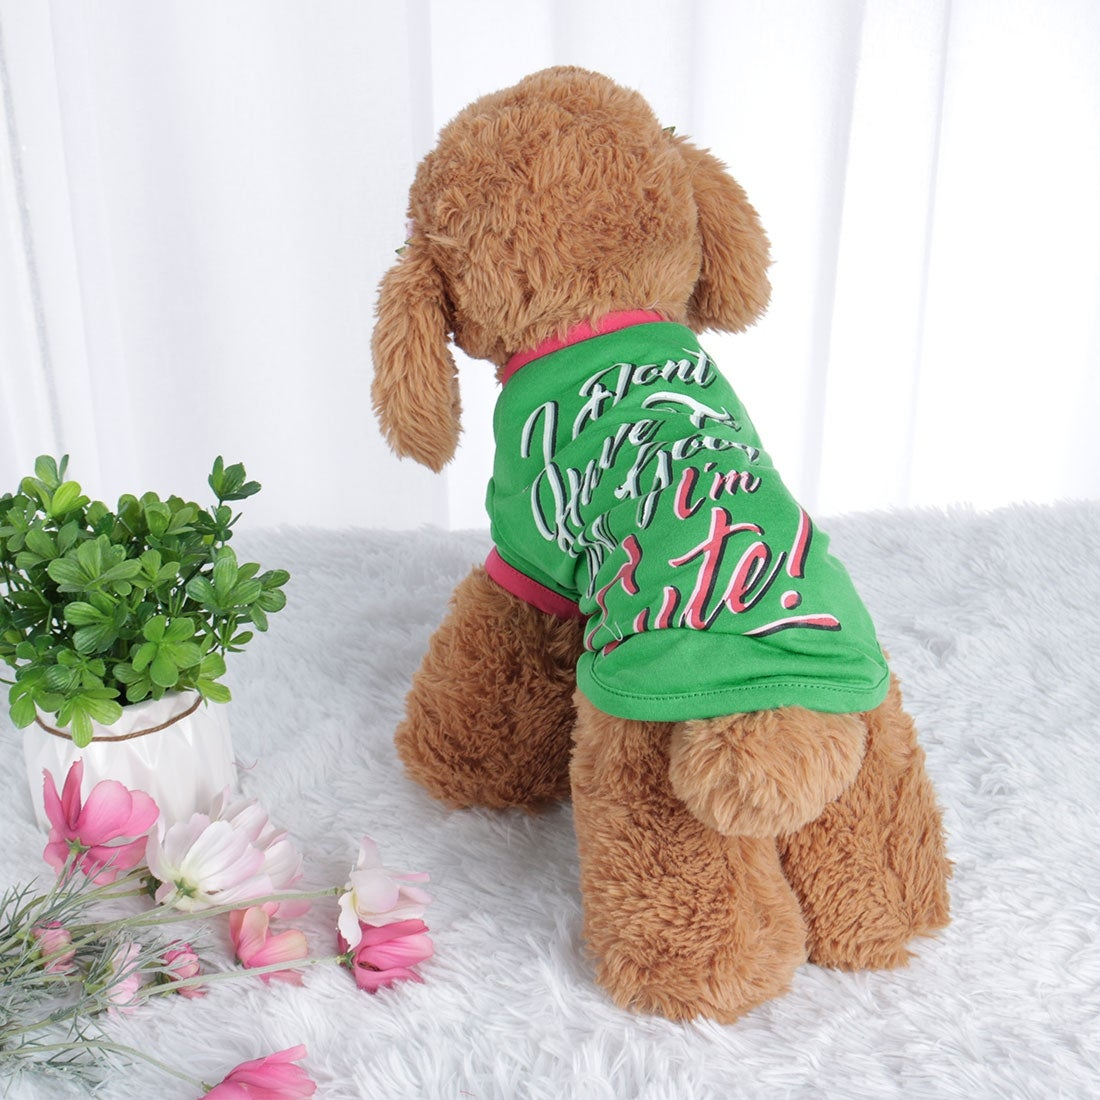 Dog T Shirt Puppy Small Pet Sweatshirt Vest Tops Clothes Apparel Vest Costume (S)